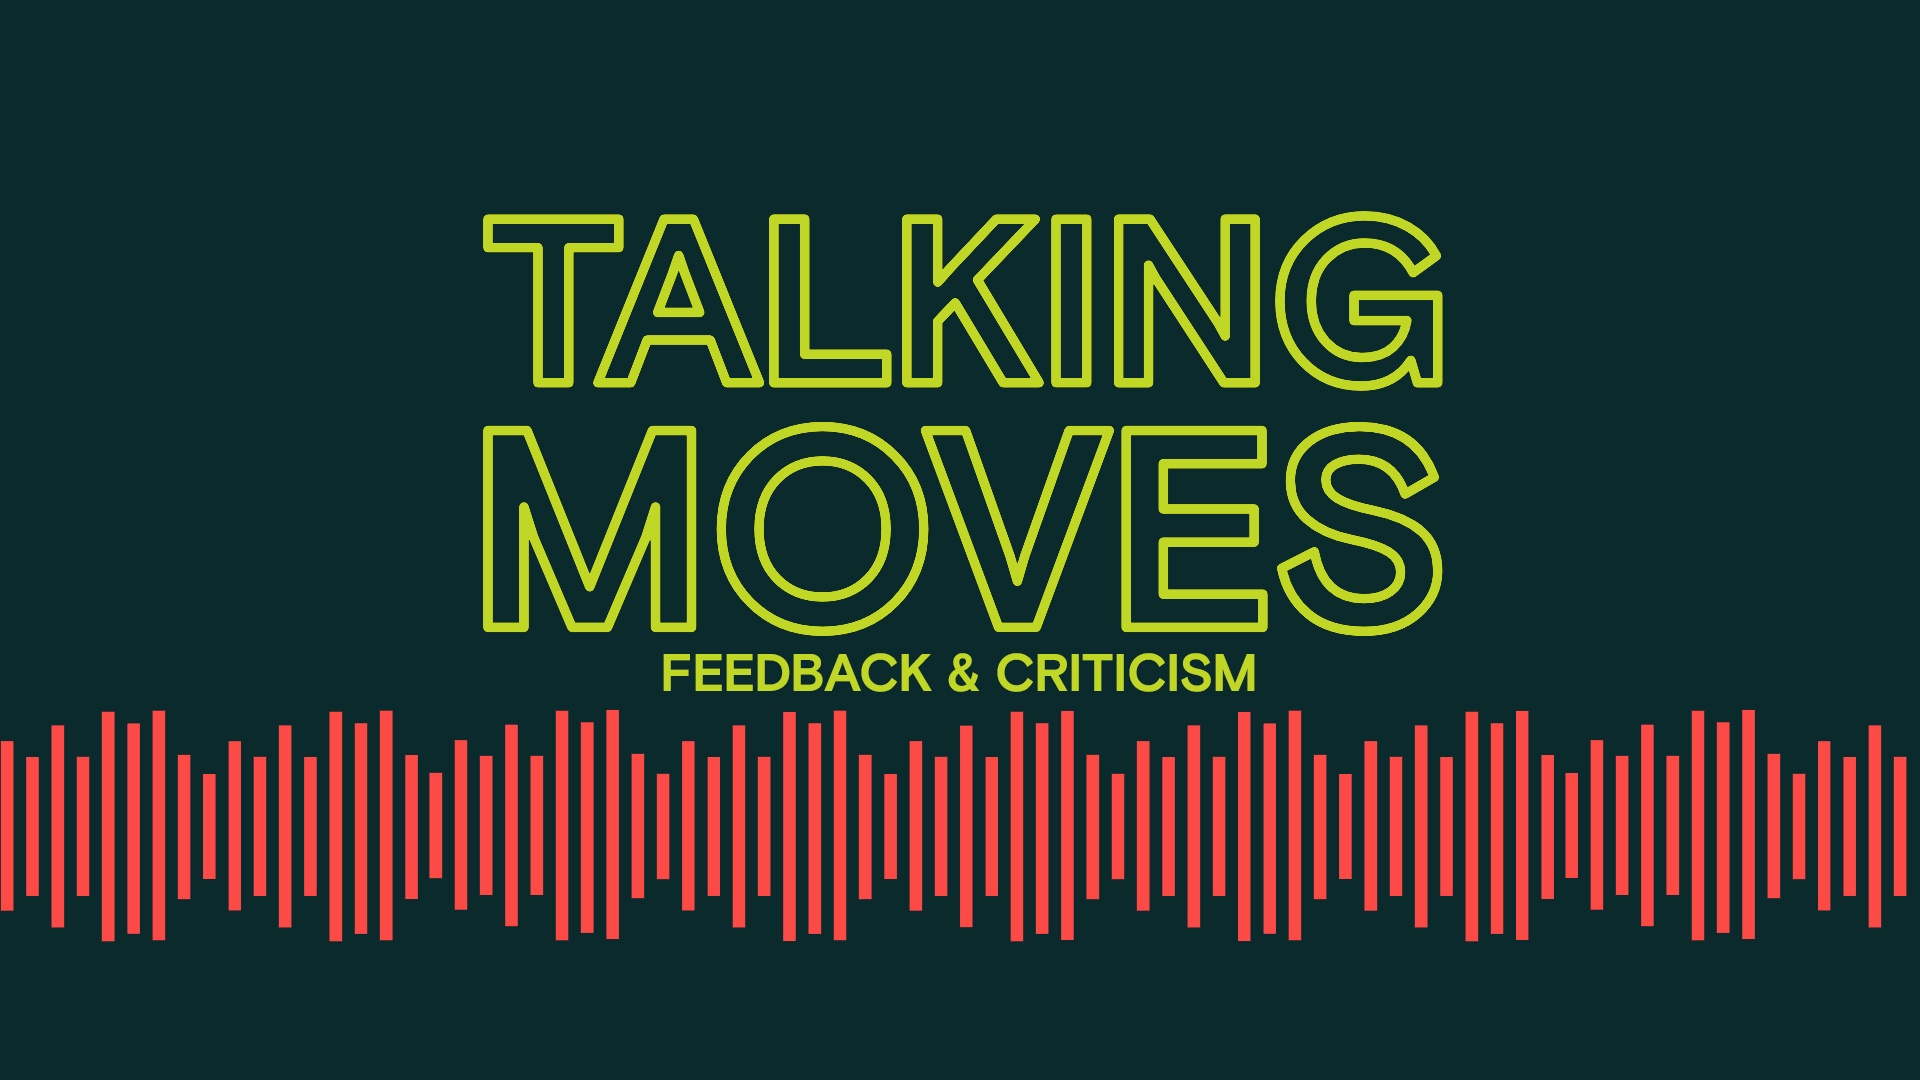 Feedback and Criticism - Talking Moves logo and title